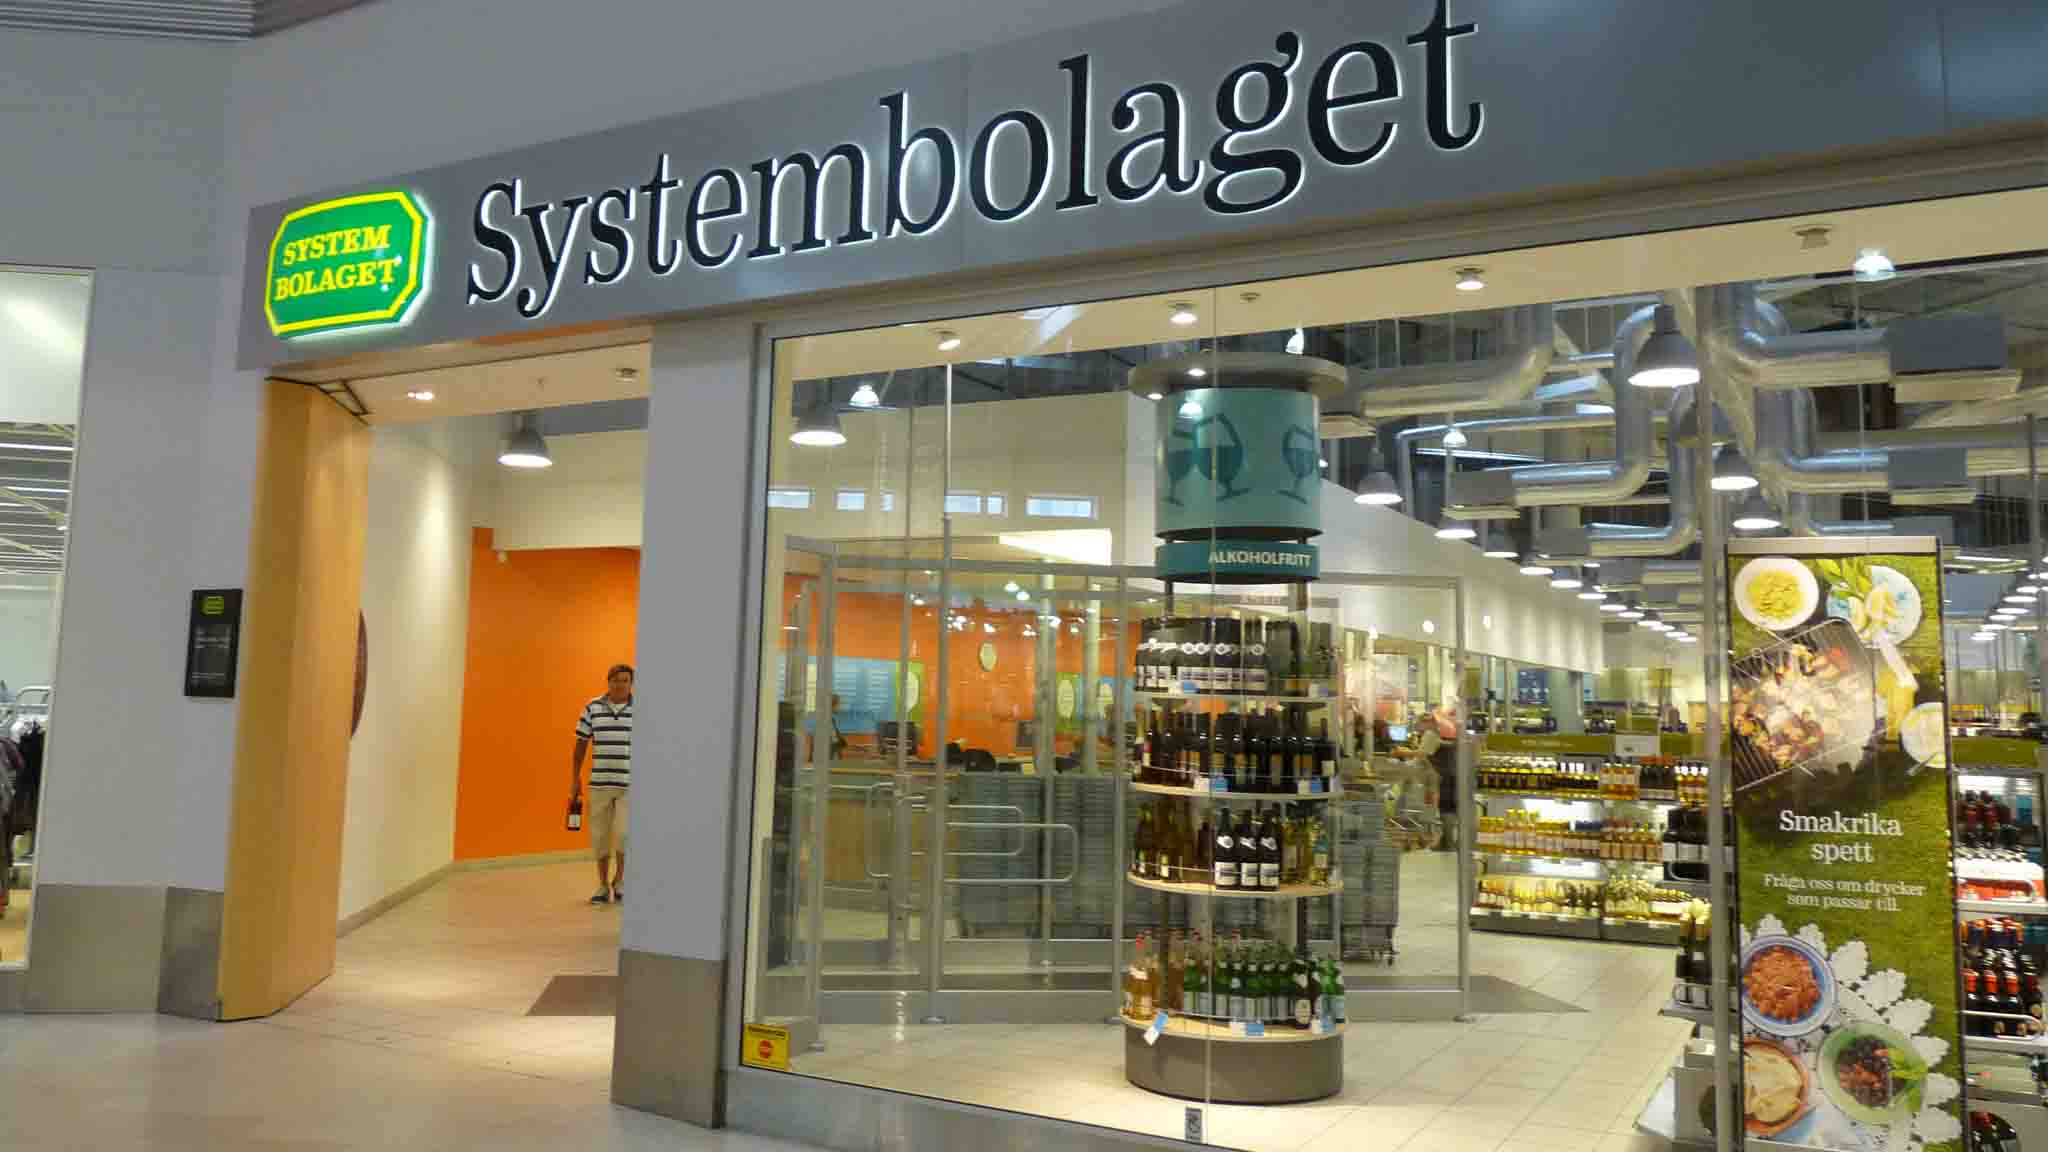 lowsystembolaget